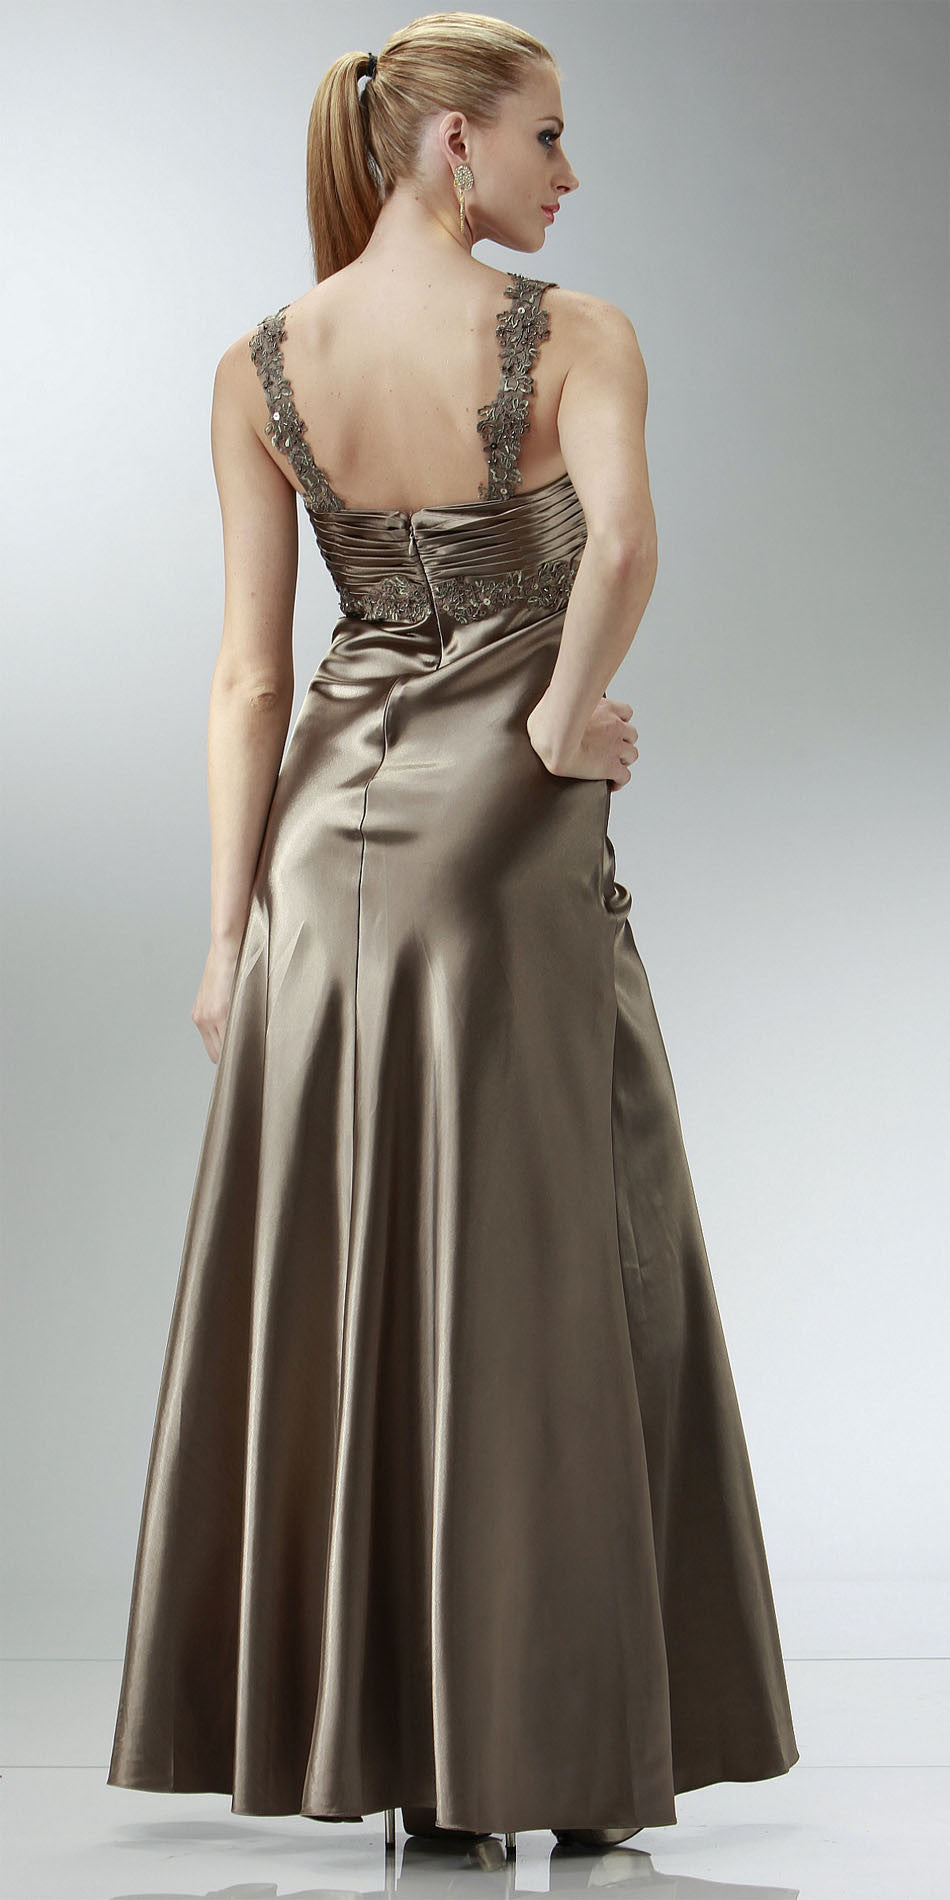 ON SPECIAL LIMITED STOCK - Cheap Mocha Prom Dress Full Length Satin Gown Applique Cross Straps